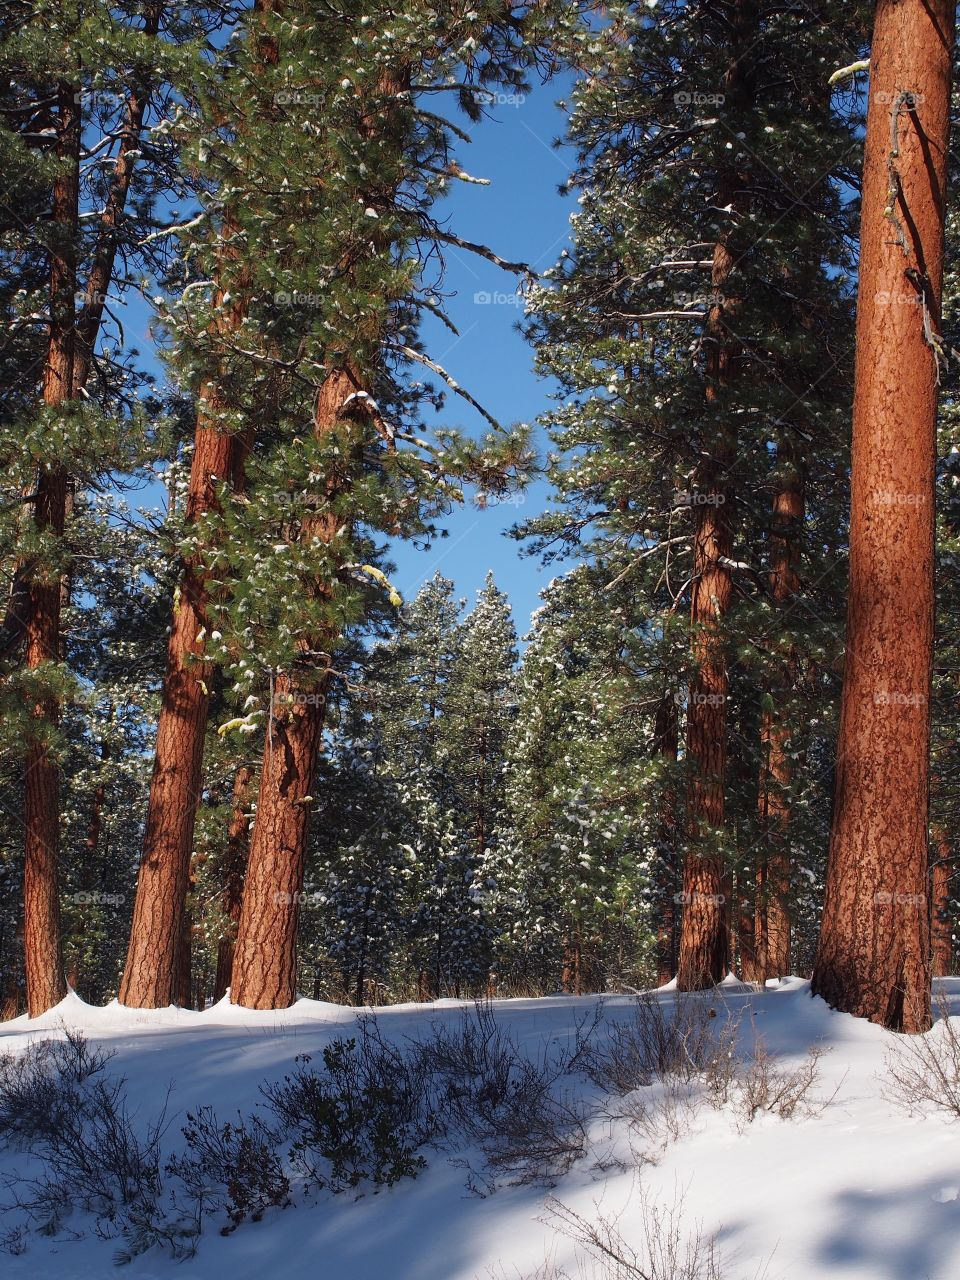 Towering Ponderosa Pine Trees with fresh snow on their branches and the ground on a beautiful winter morning in Central Oregon.